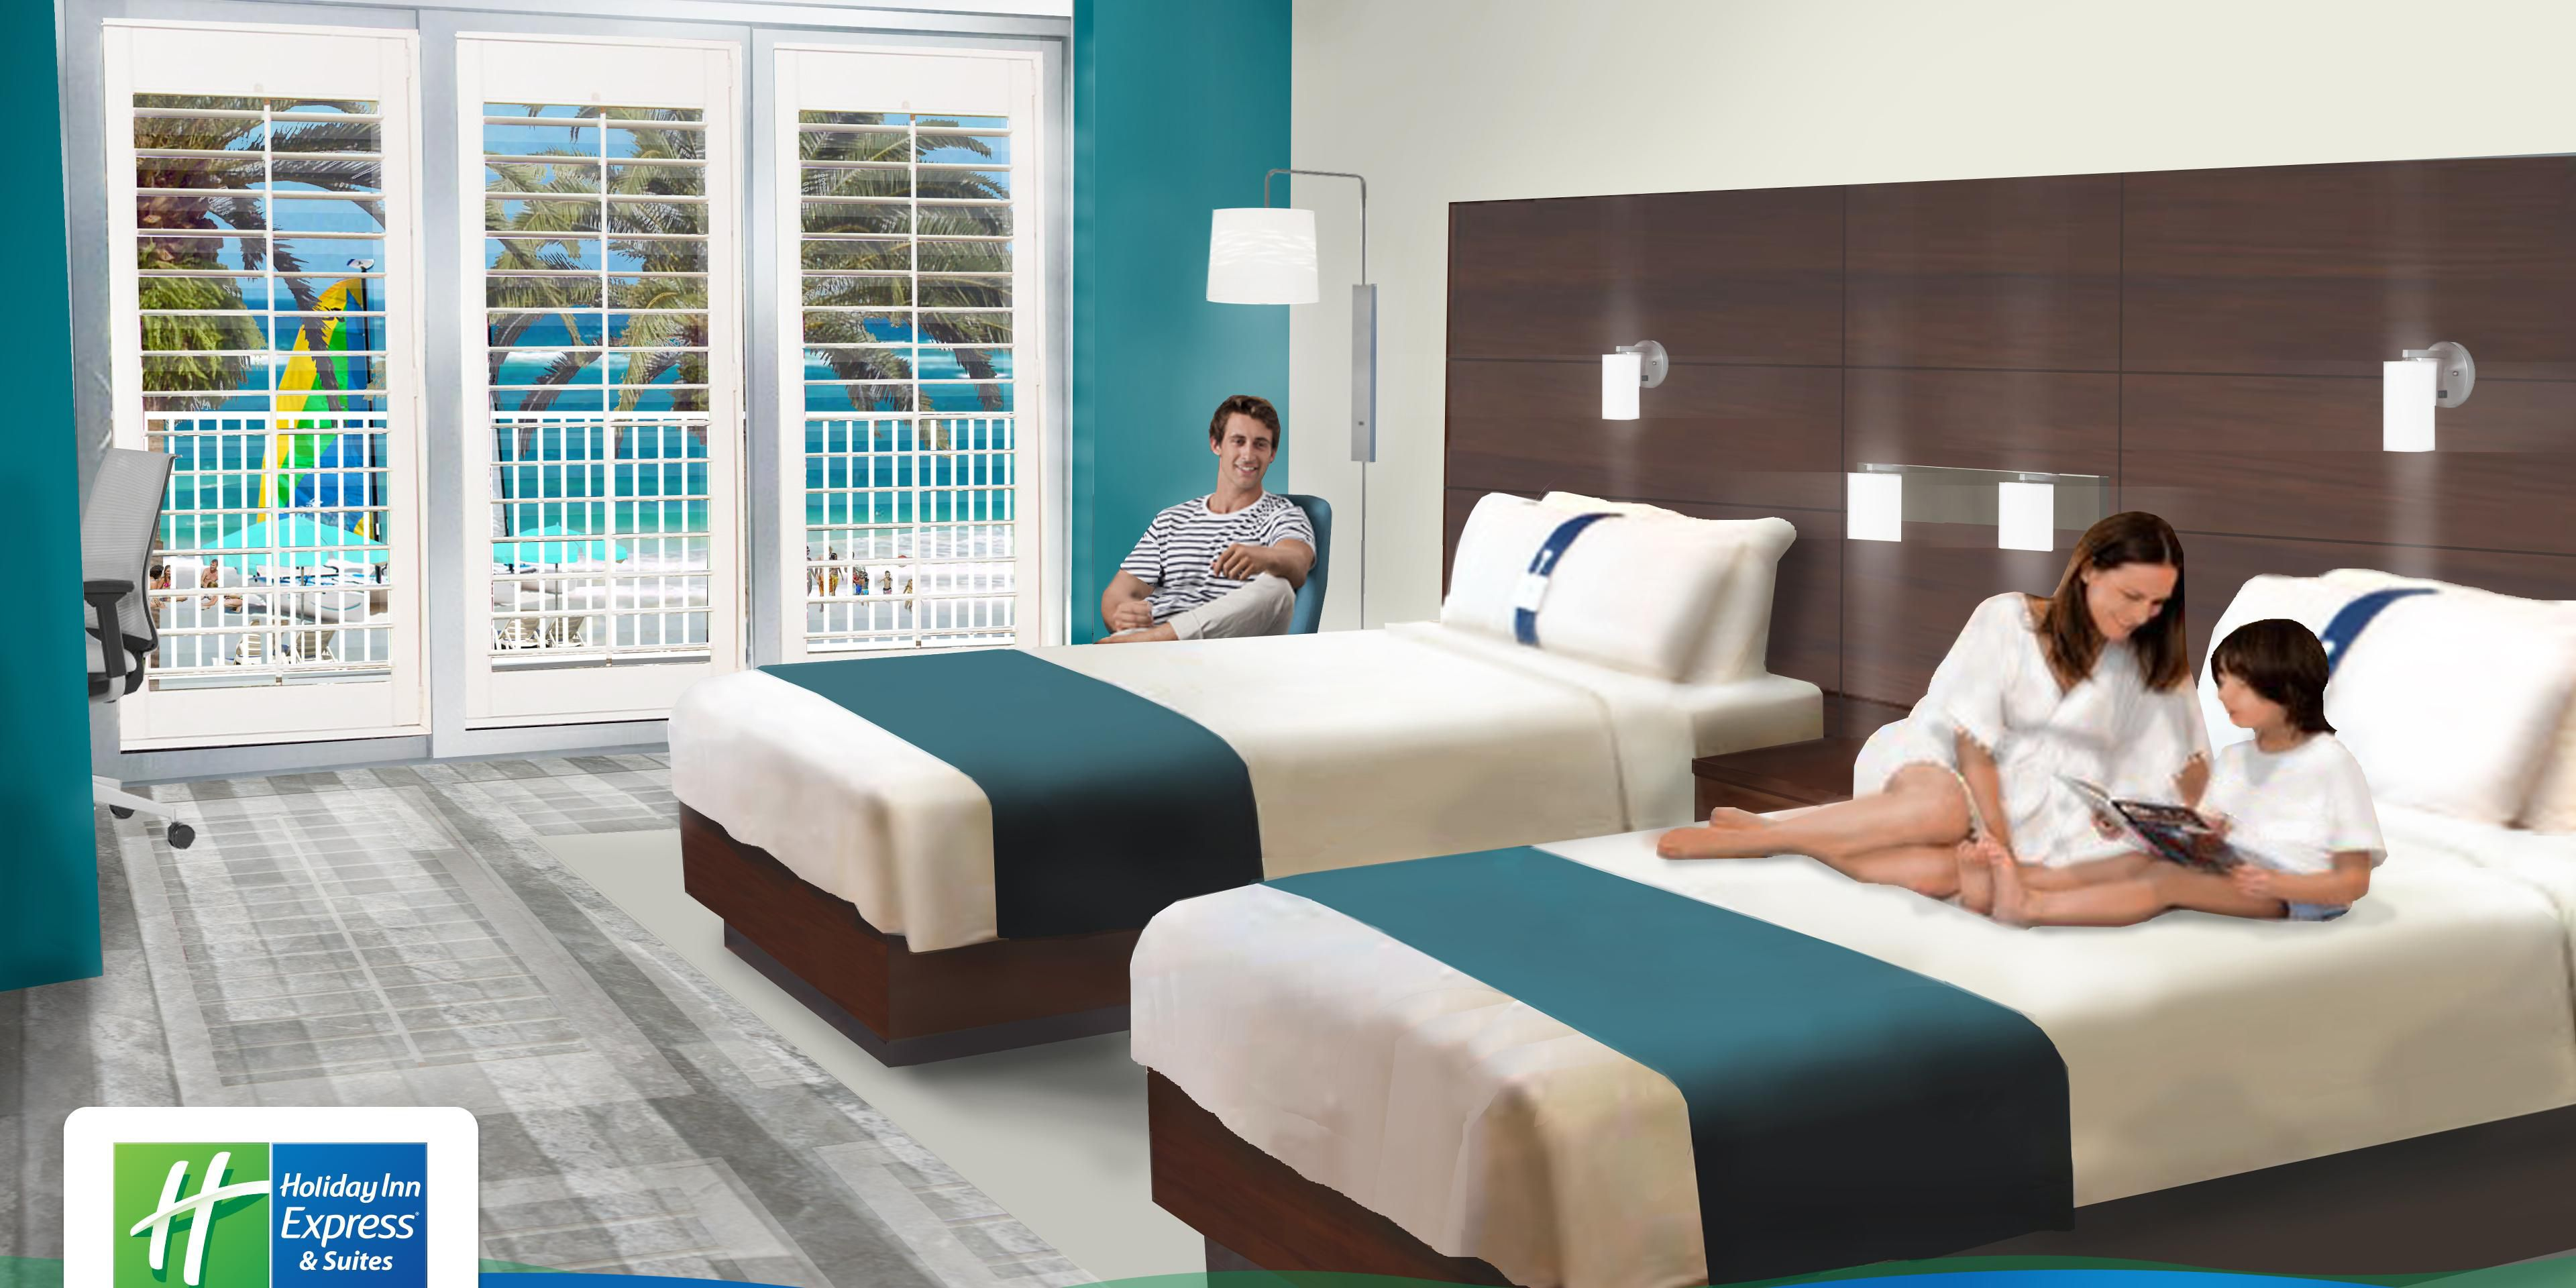 Furniture stores panama city beach fl - Holiday Inn Express And Suites Panama City Beach